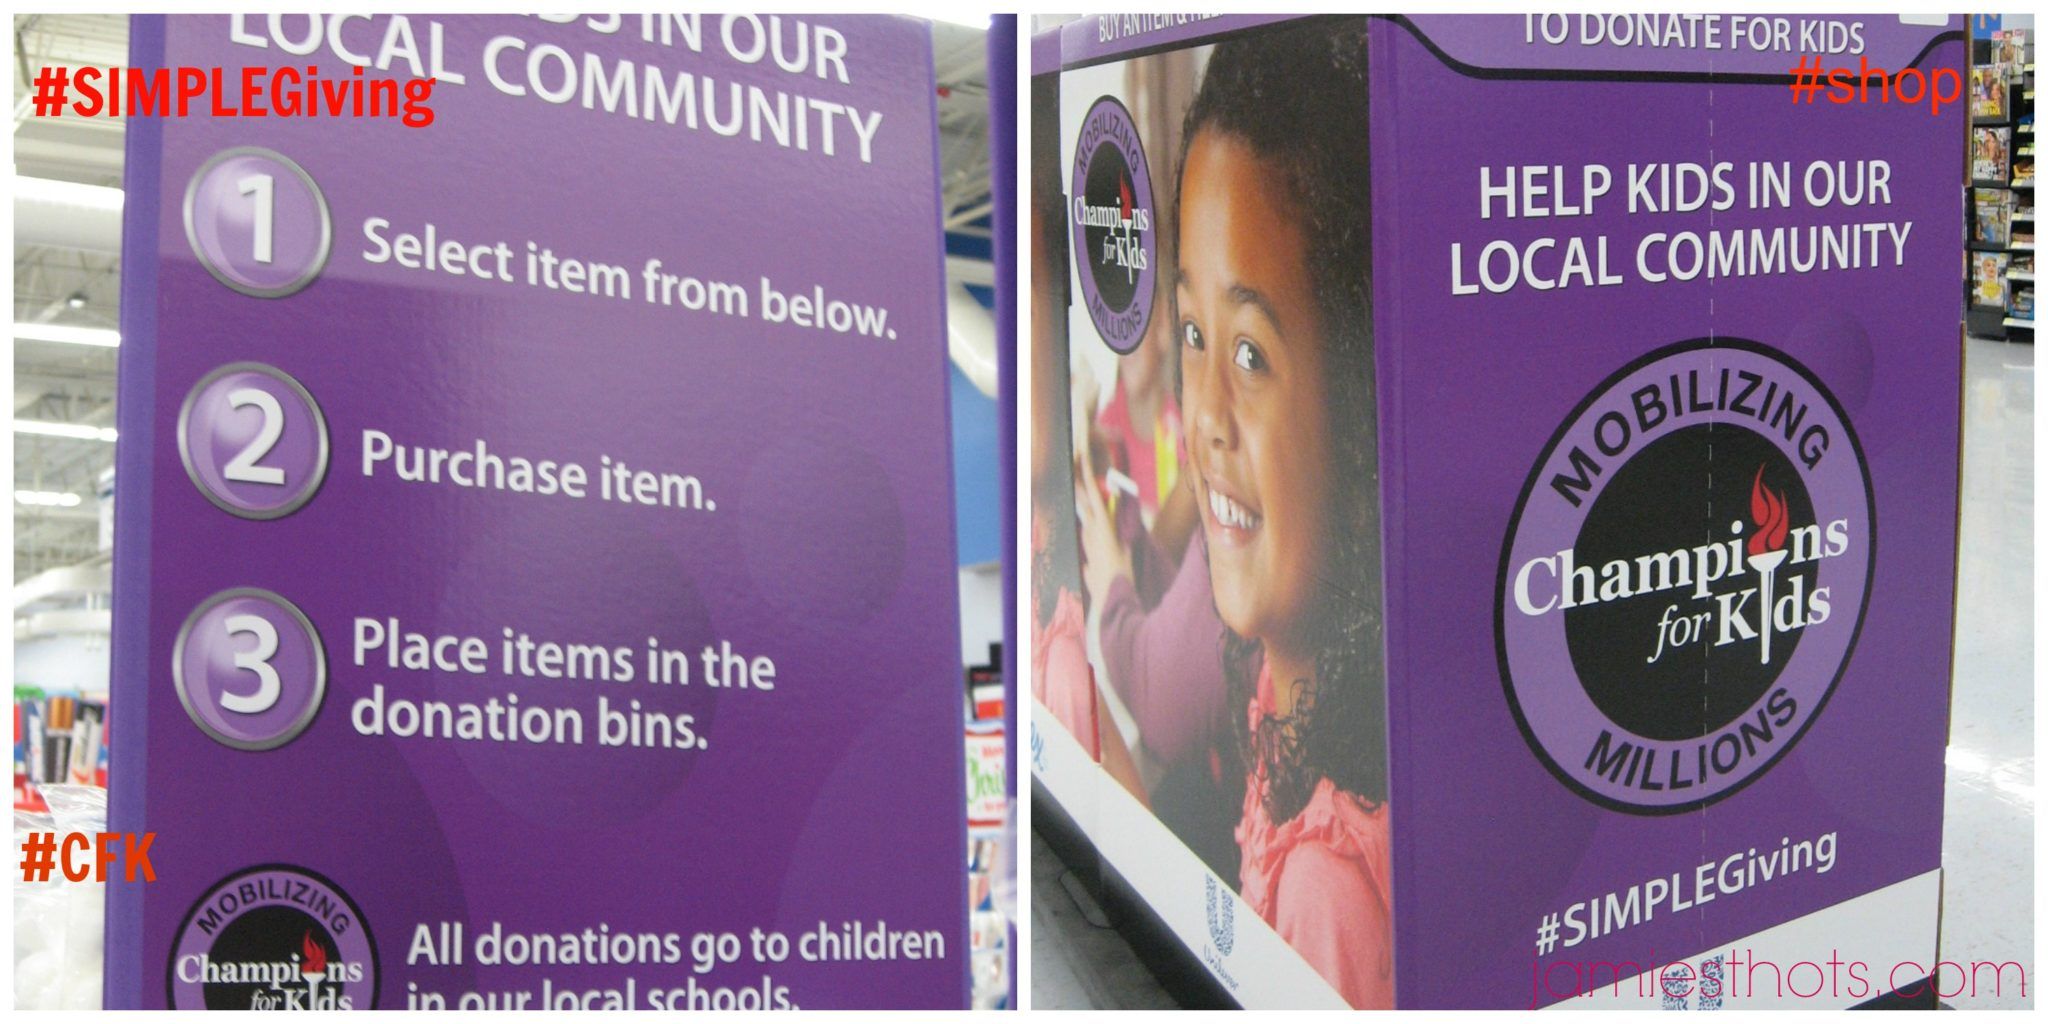 #SIMPLEGiving with Unilever, Kimberly-Clark creates 'Champions for Kids'